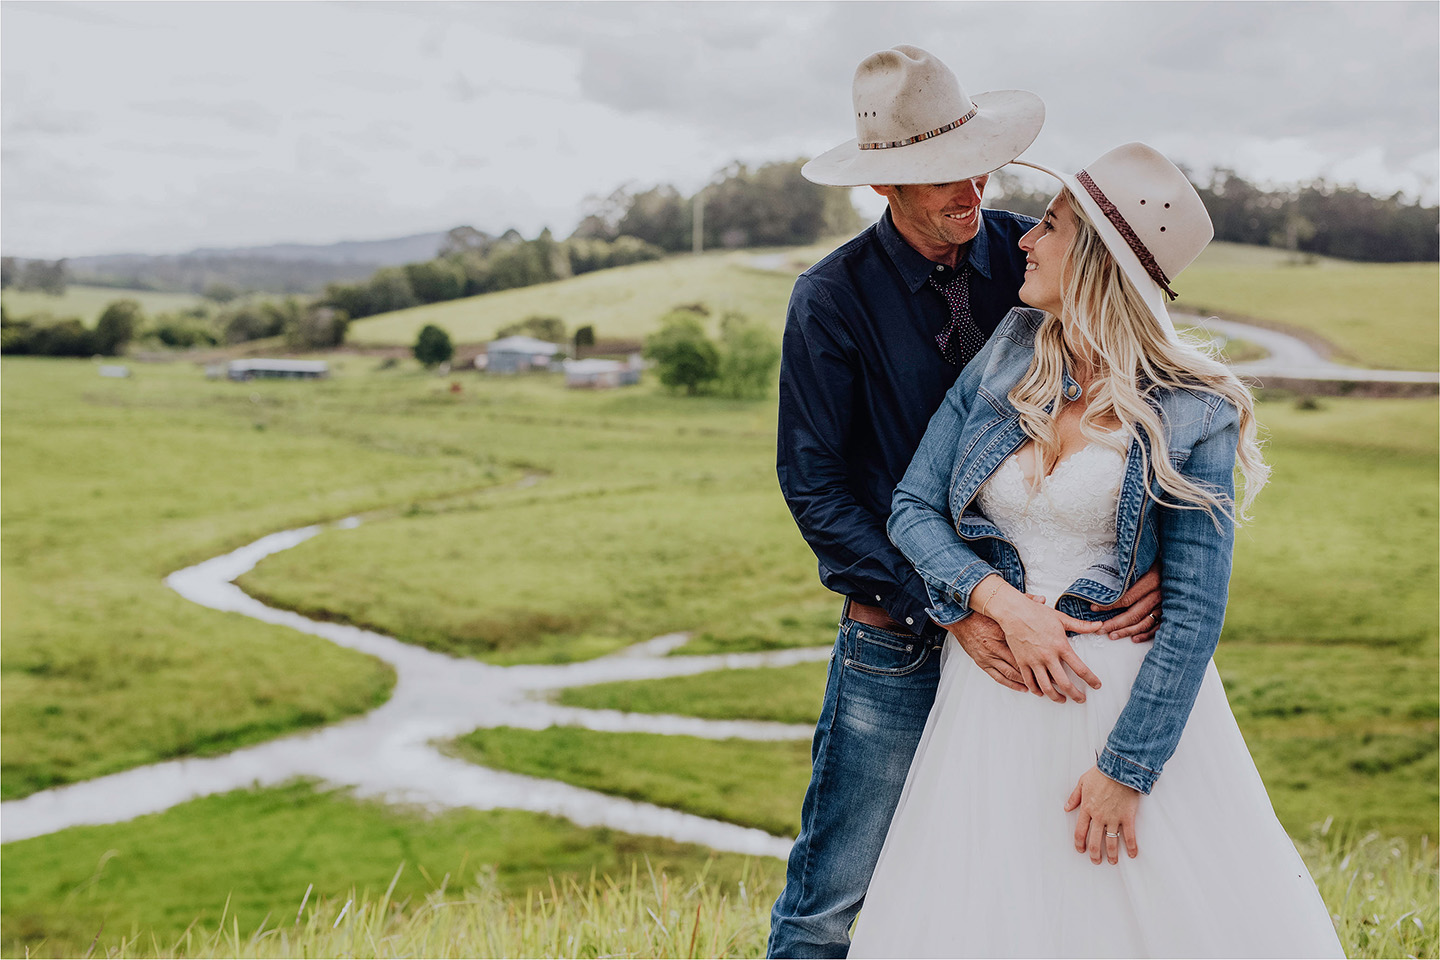 wedding, on a farm, cowboys wedding, location wedding, cowboys hat, Alice Payne photography